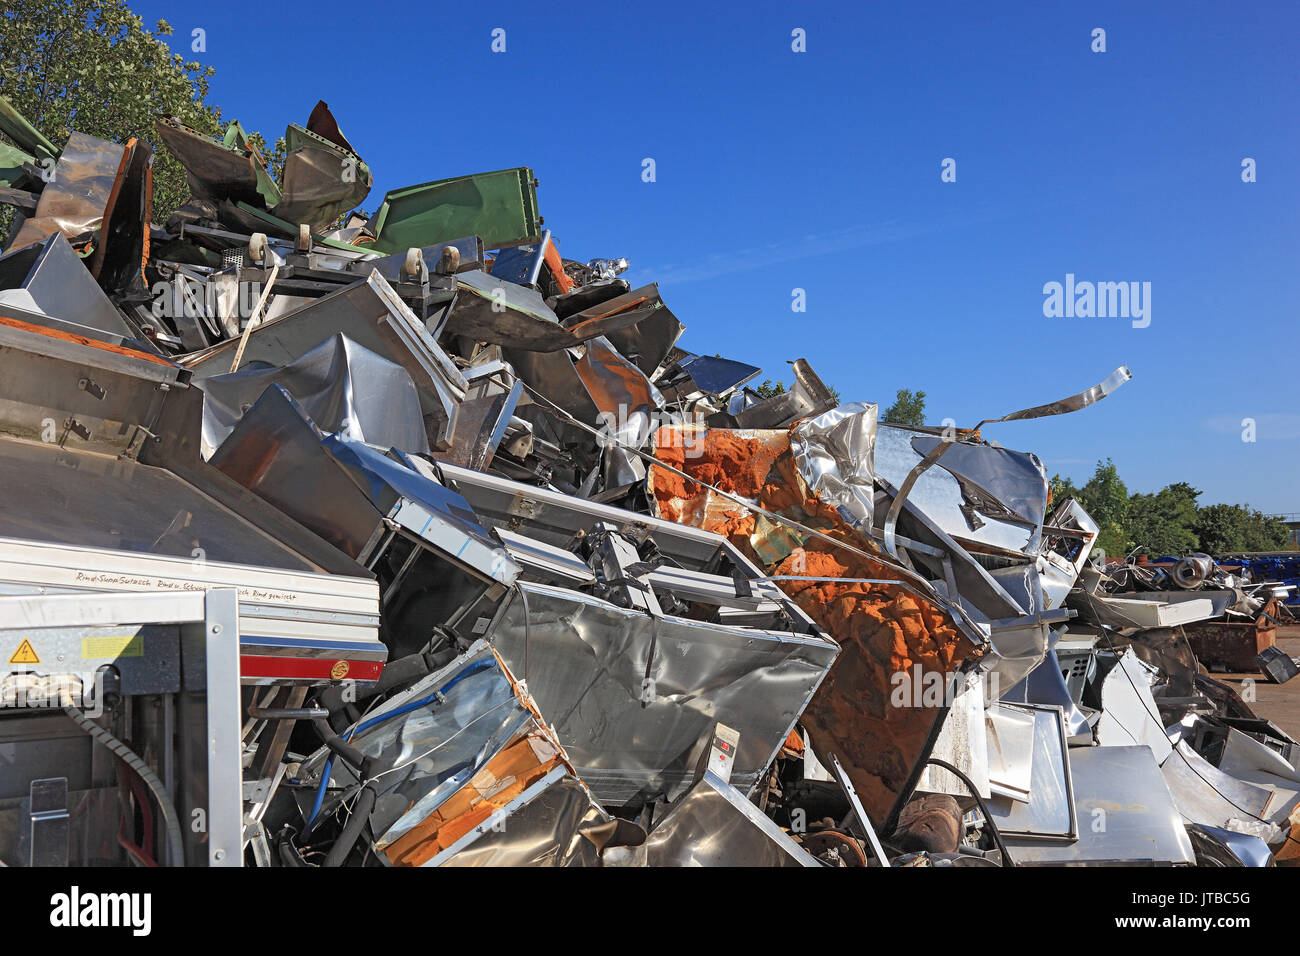 Scrap Metal Utilisation Stock Photos & Scrap Metal